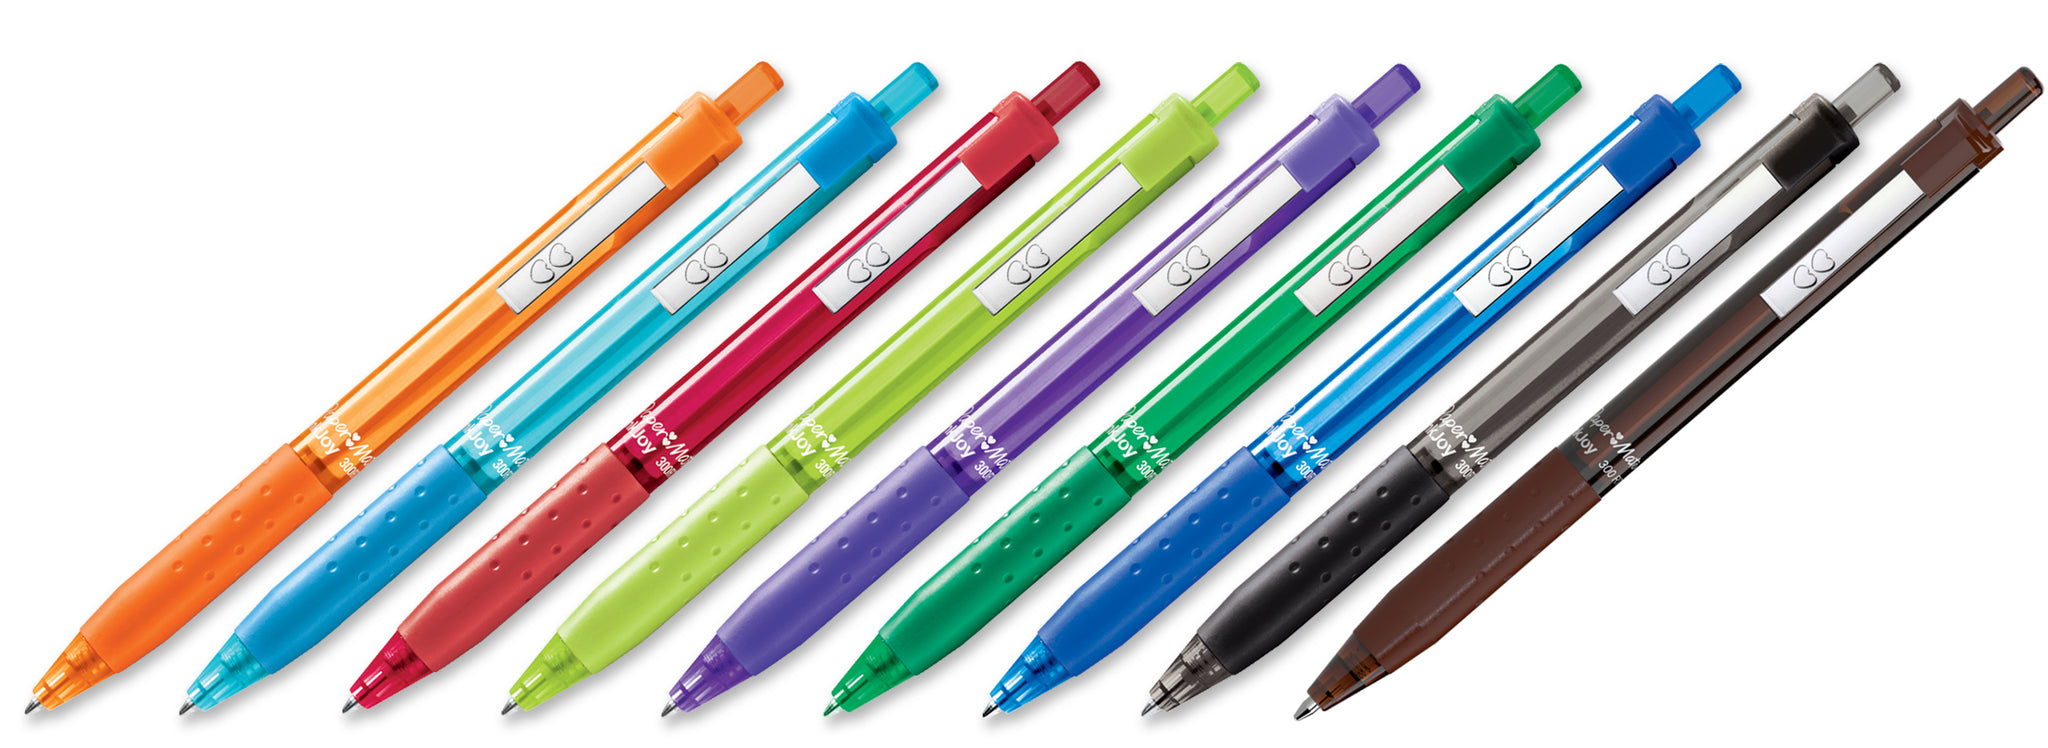 Translucent barrel retractable pen with colored ink